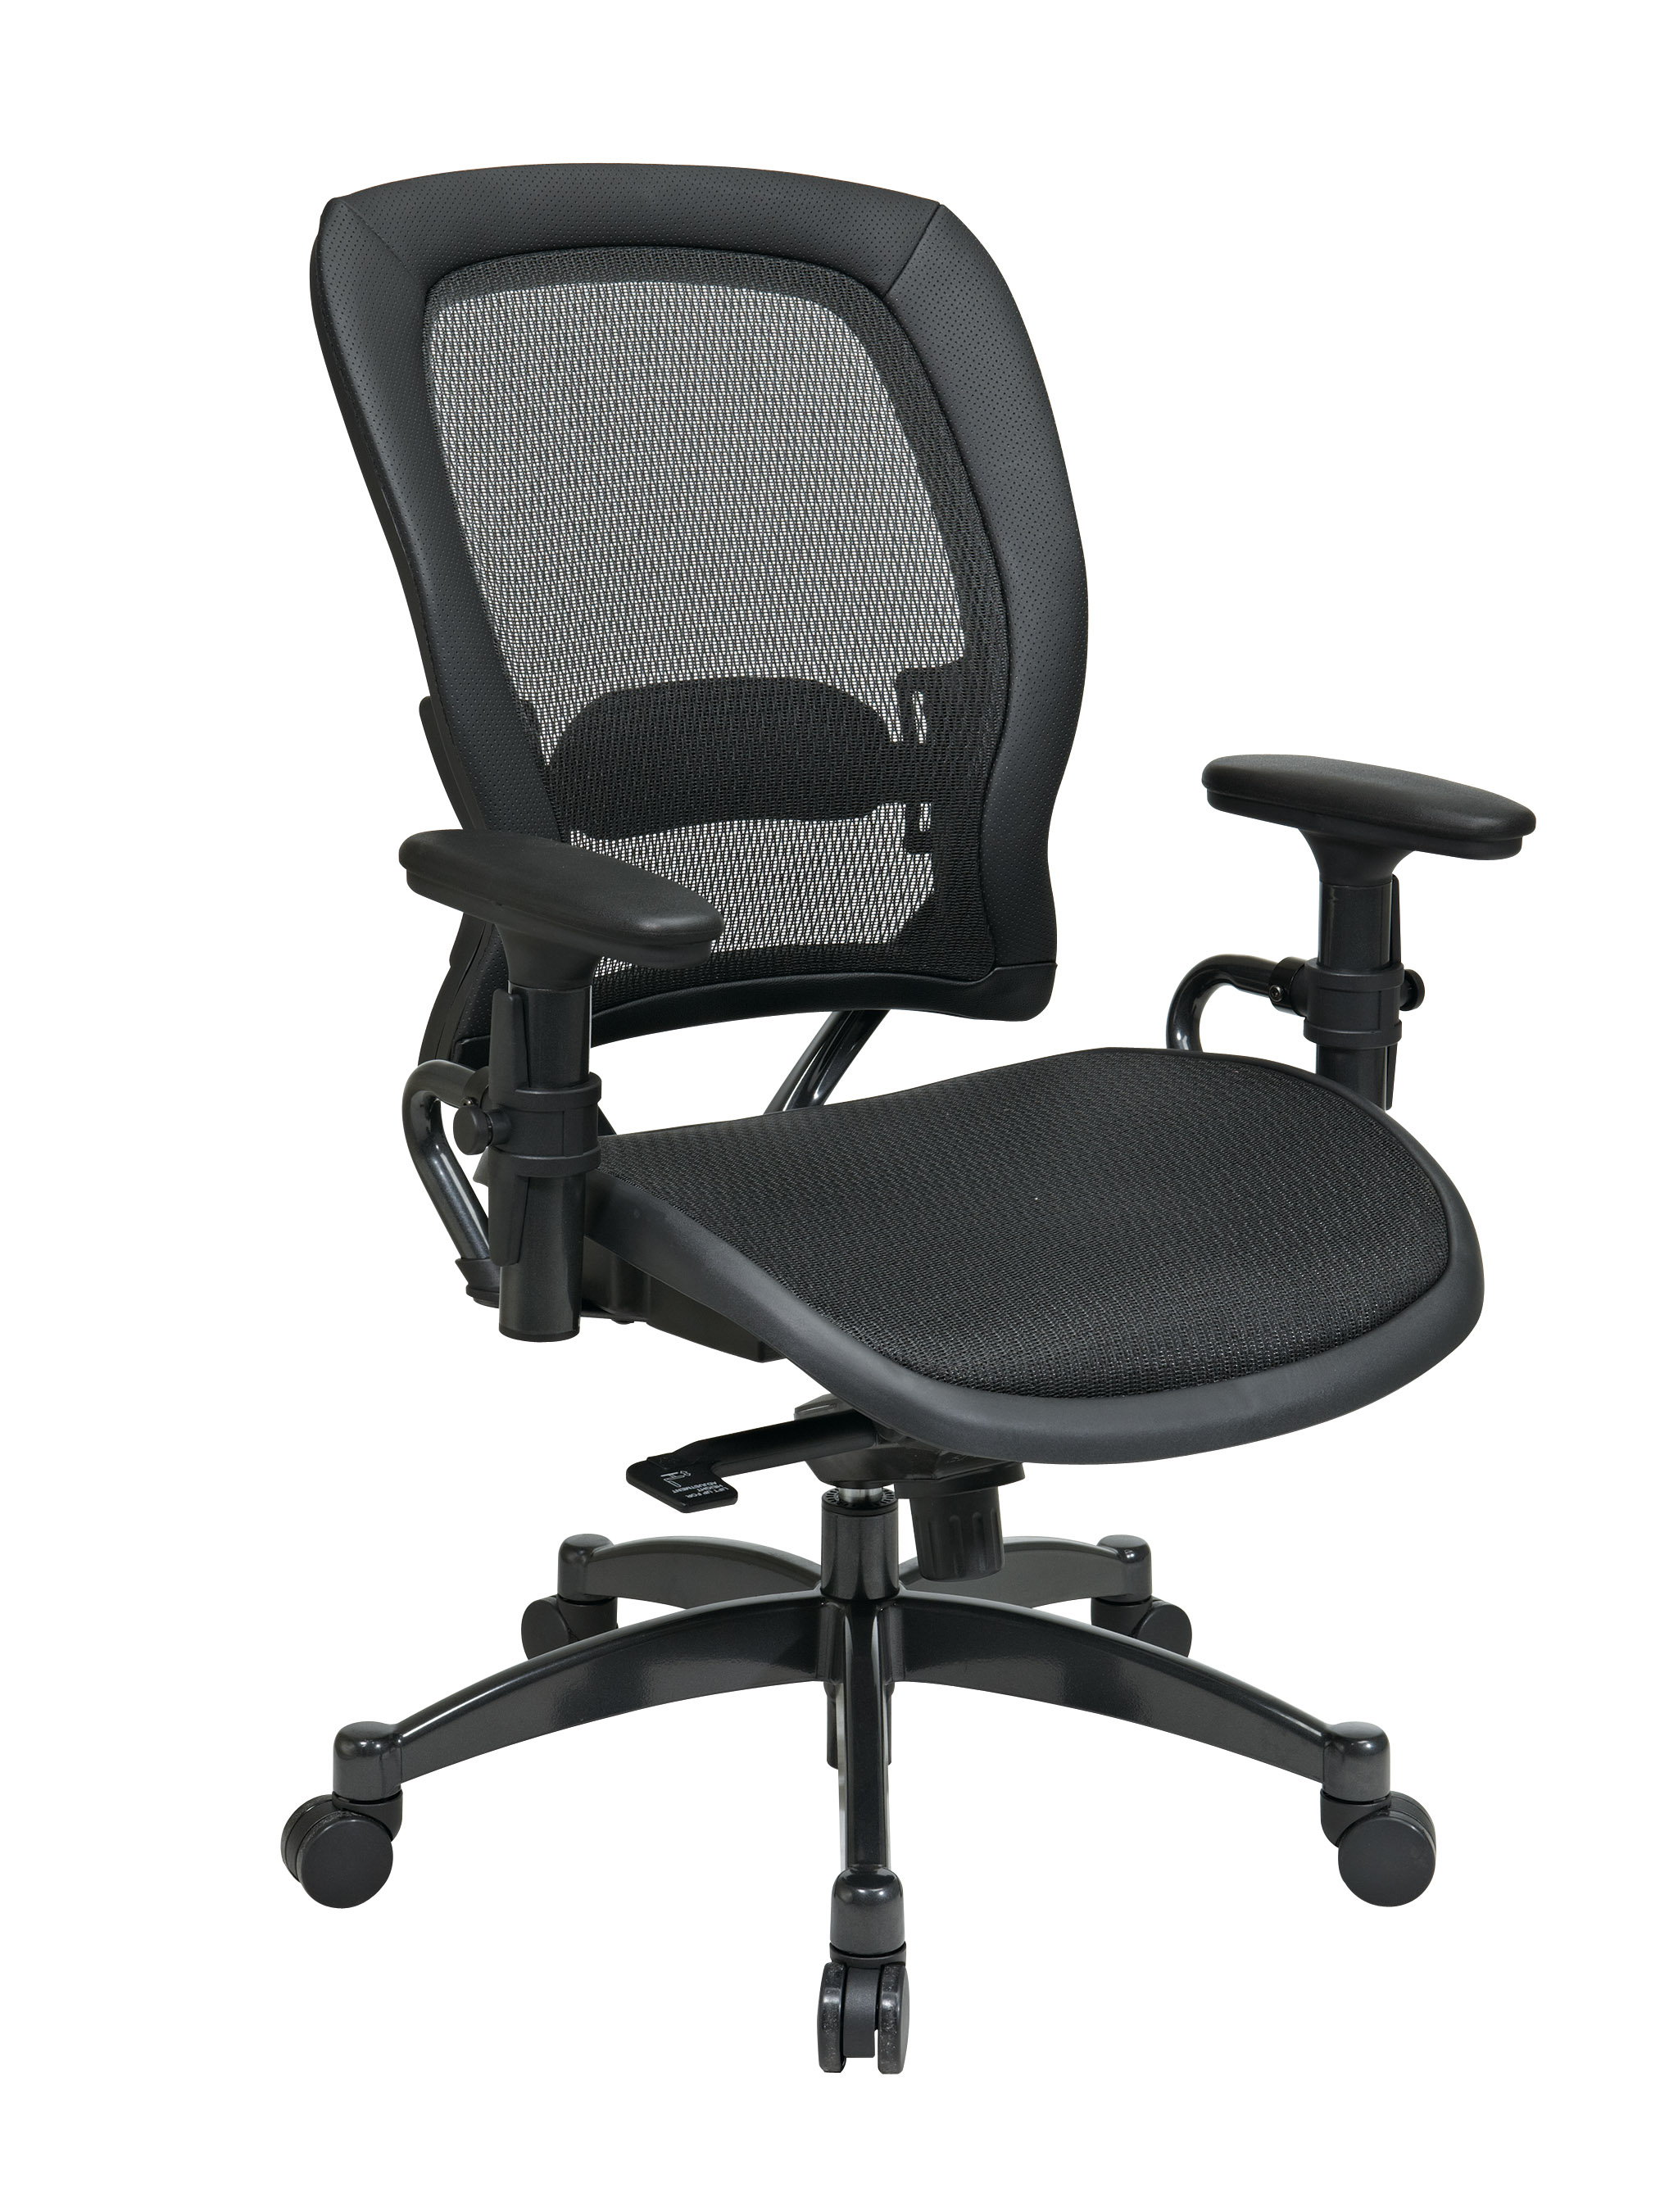 Black-Breathable-Mesh-Chair-Front